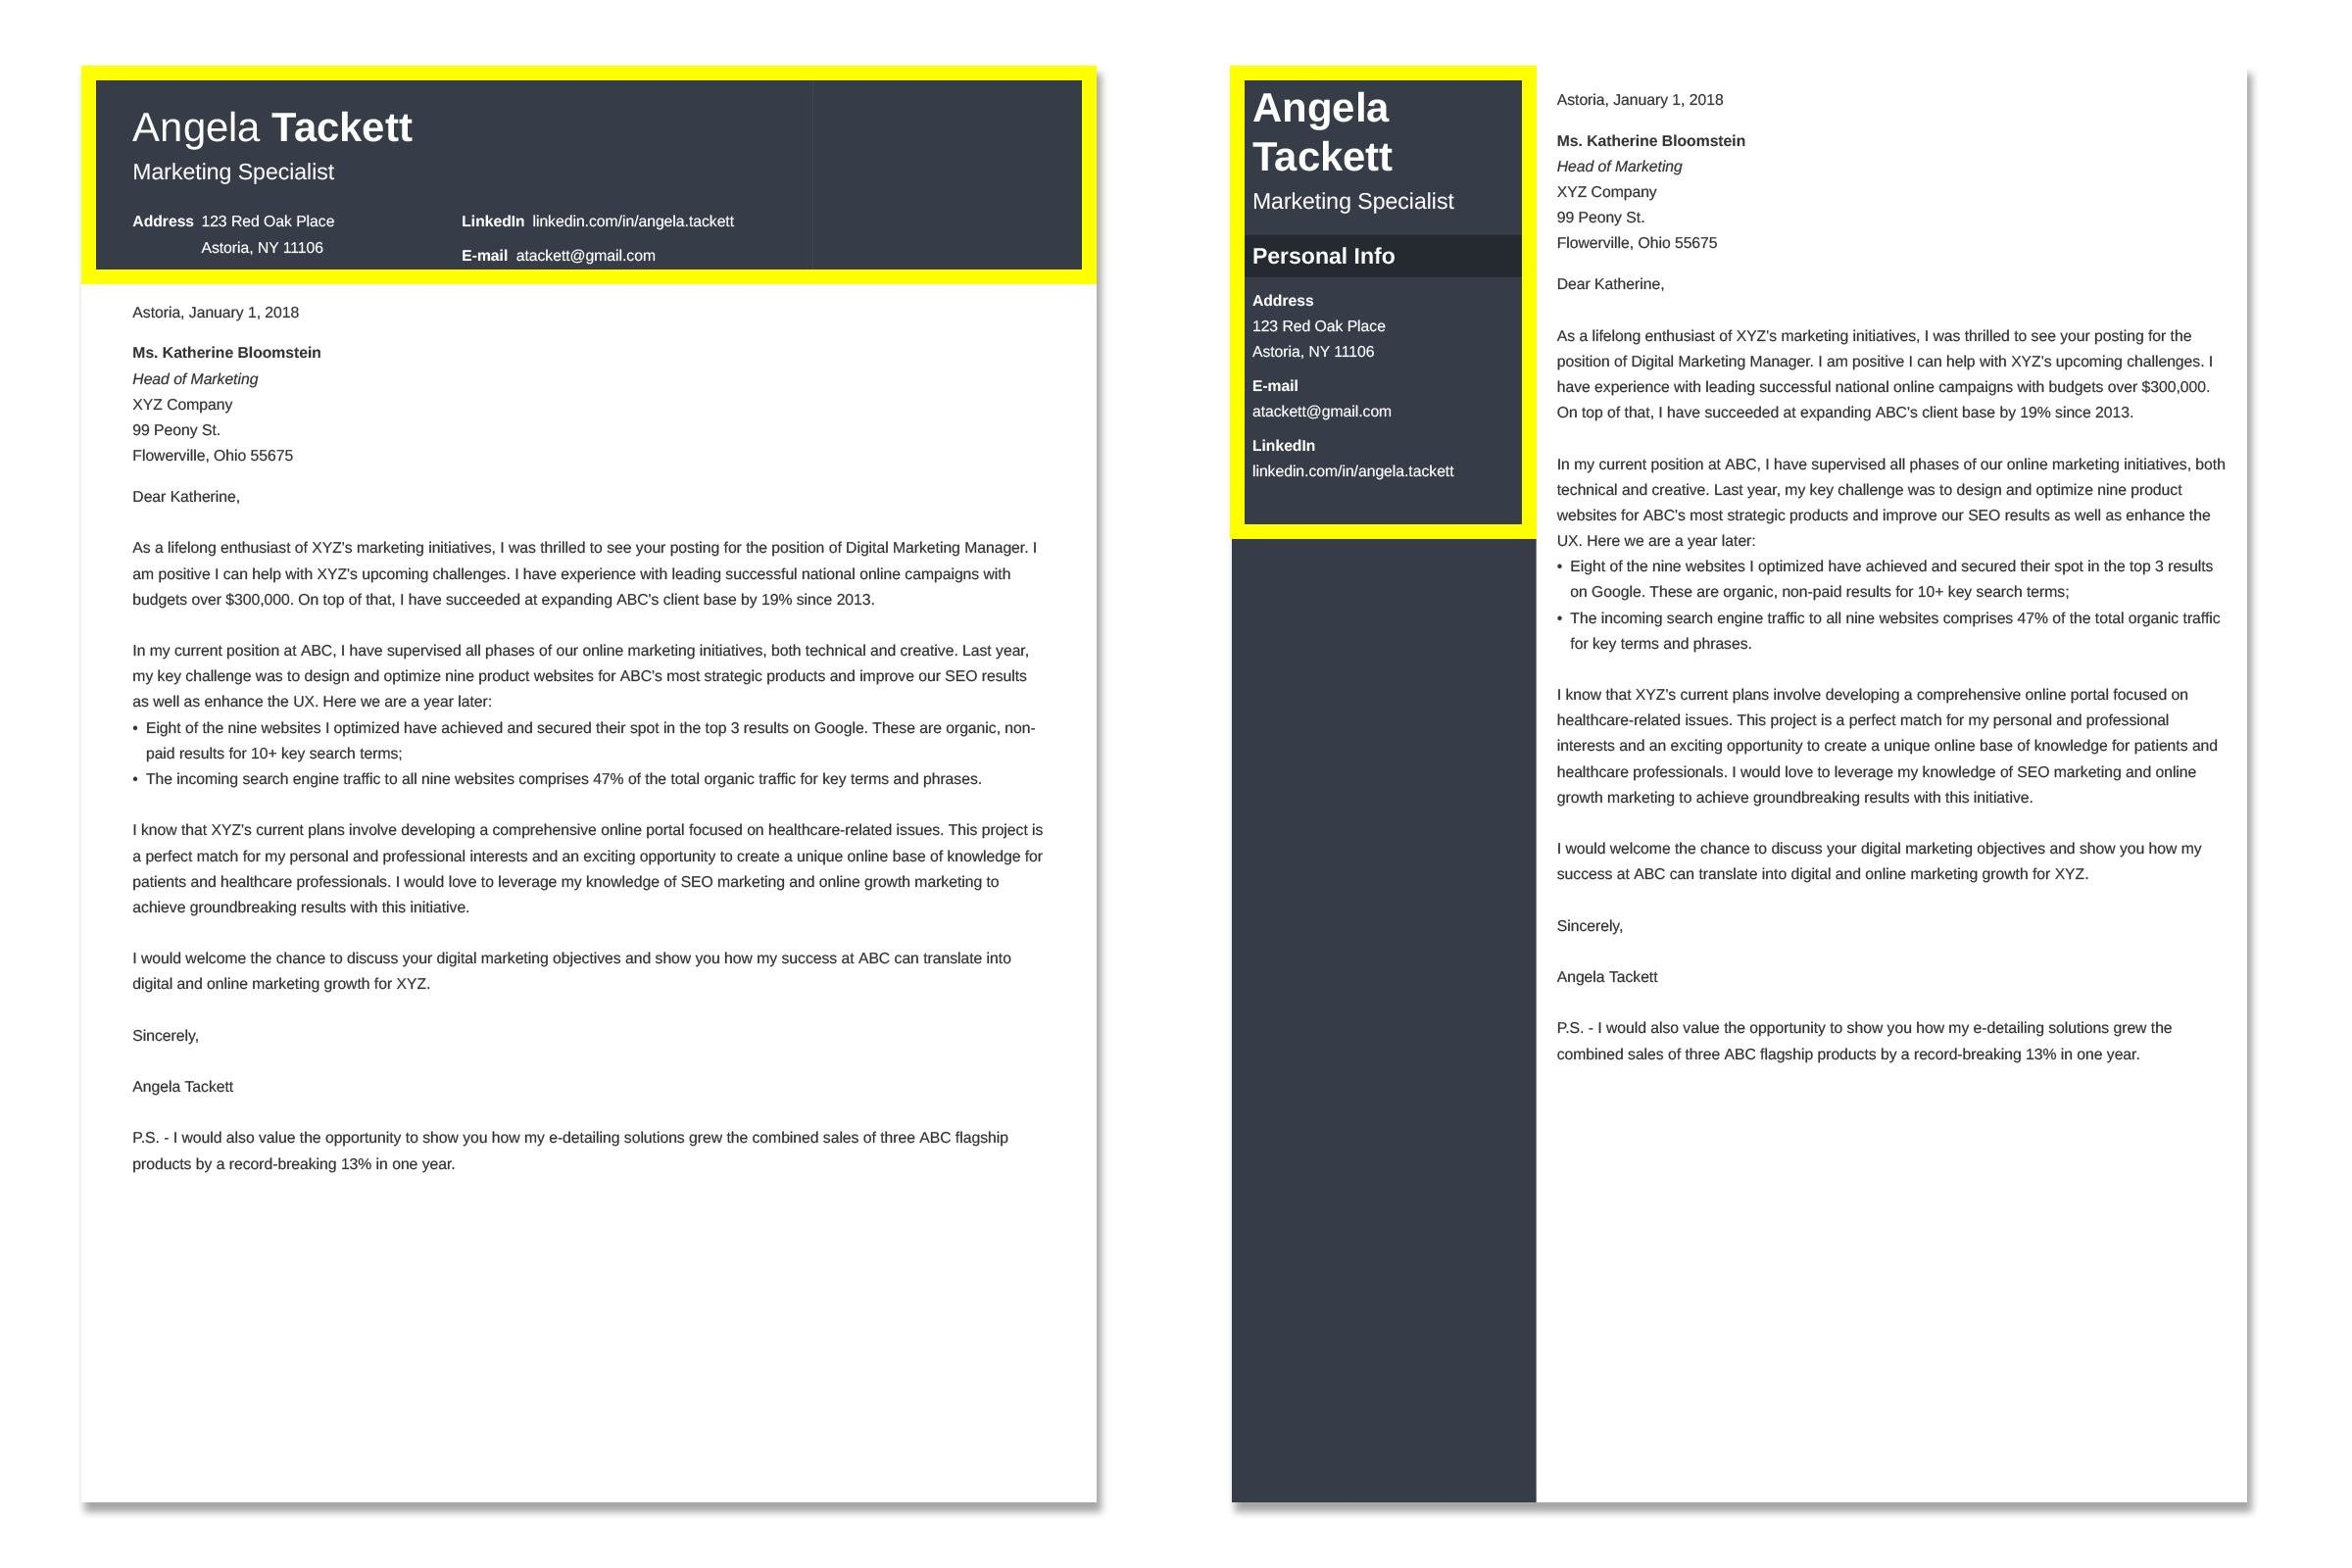 Administrative assistant cover letter sample guide 20 examples example of how to include an address on an admin assistant cover letter altavistaventures Image collections